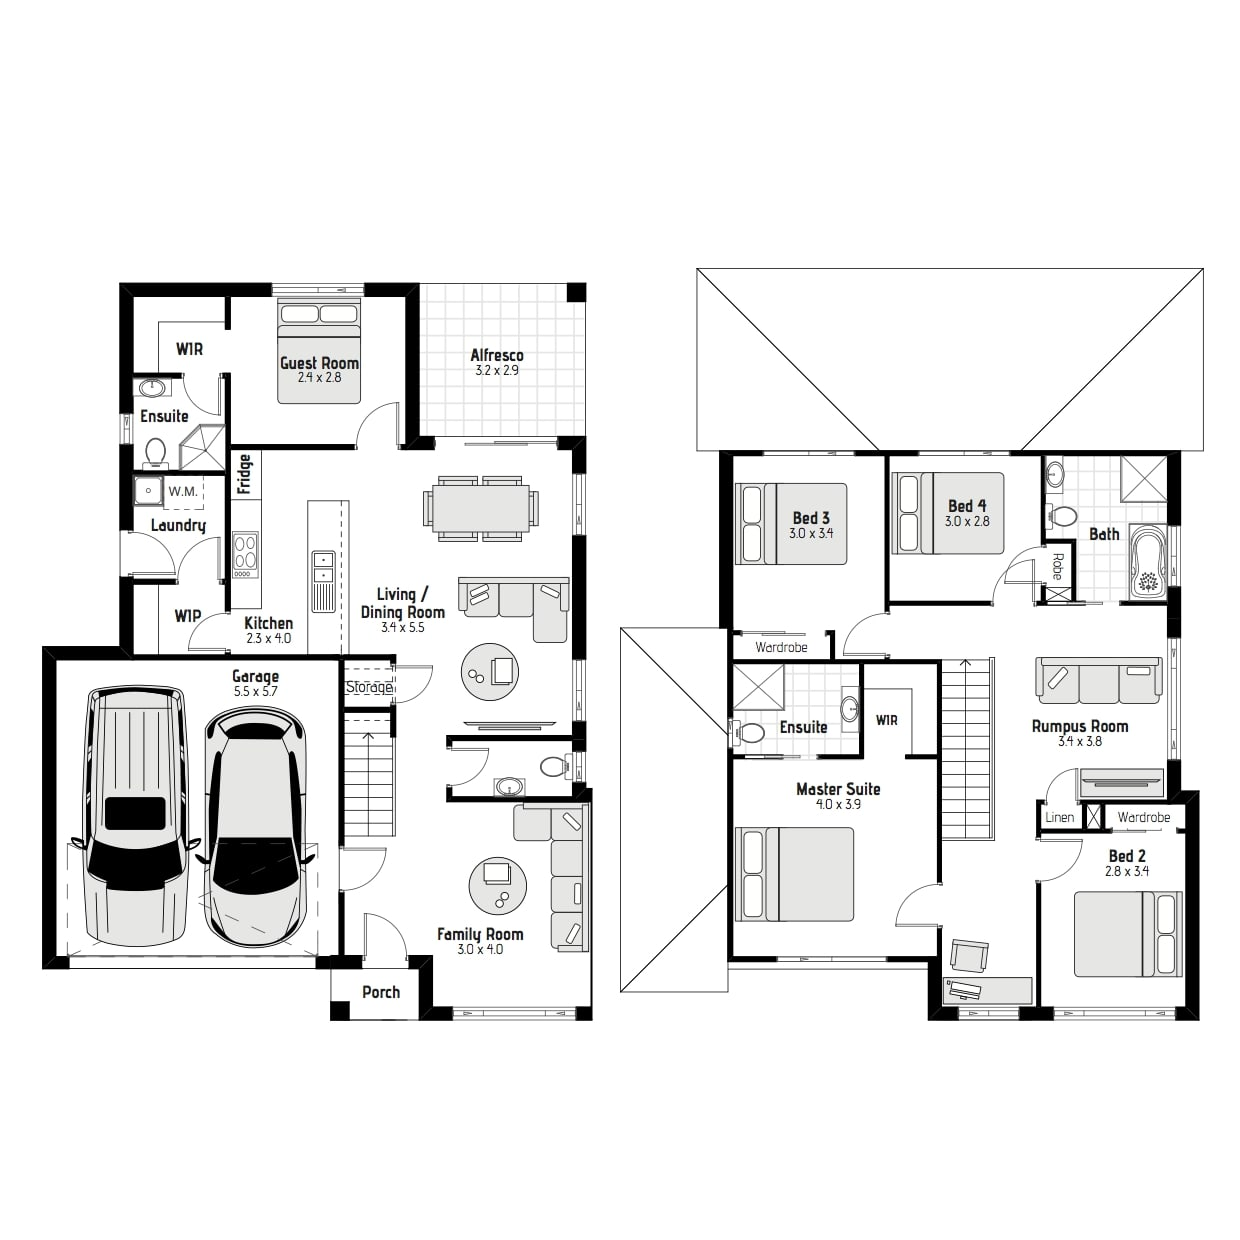 L4632960 BARDEN RIDGE NSW 2234 - Floor plan